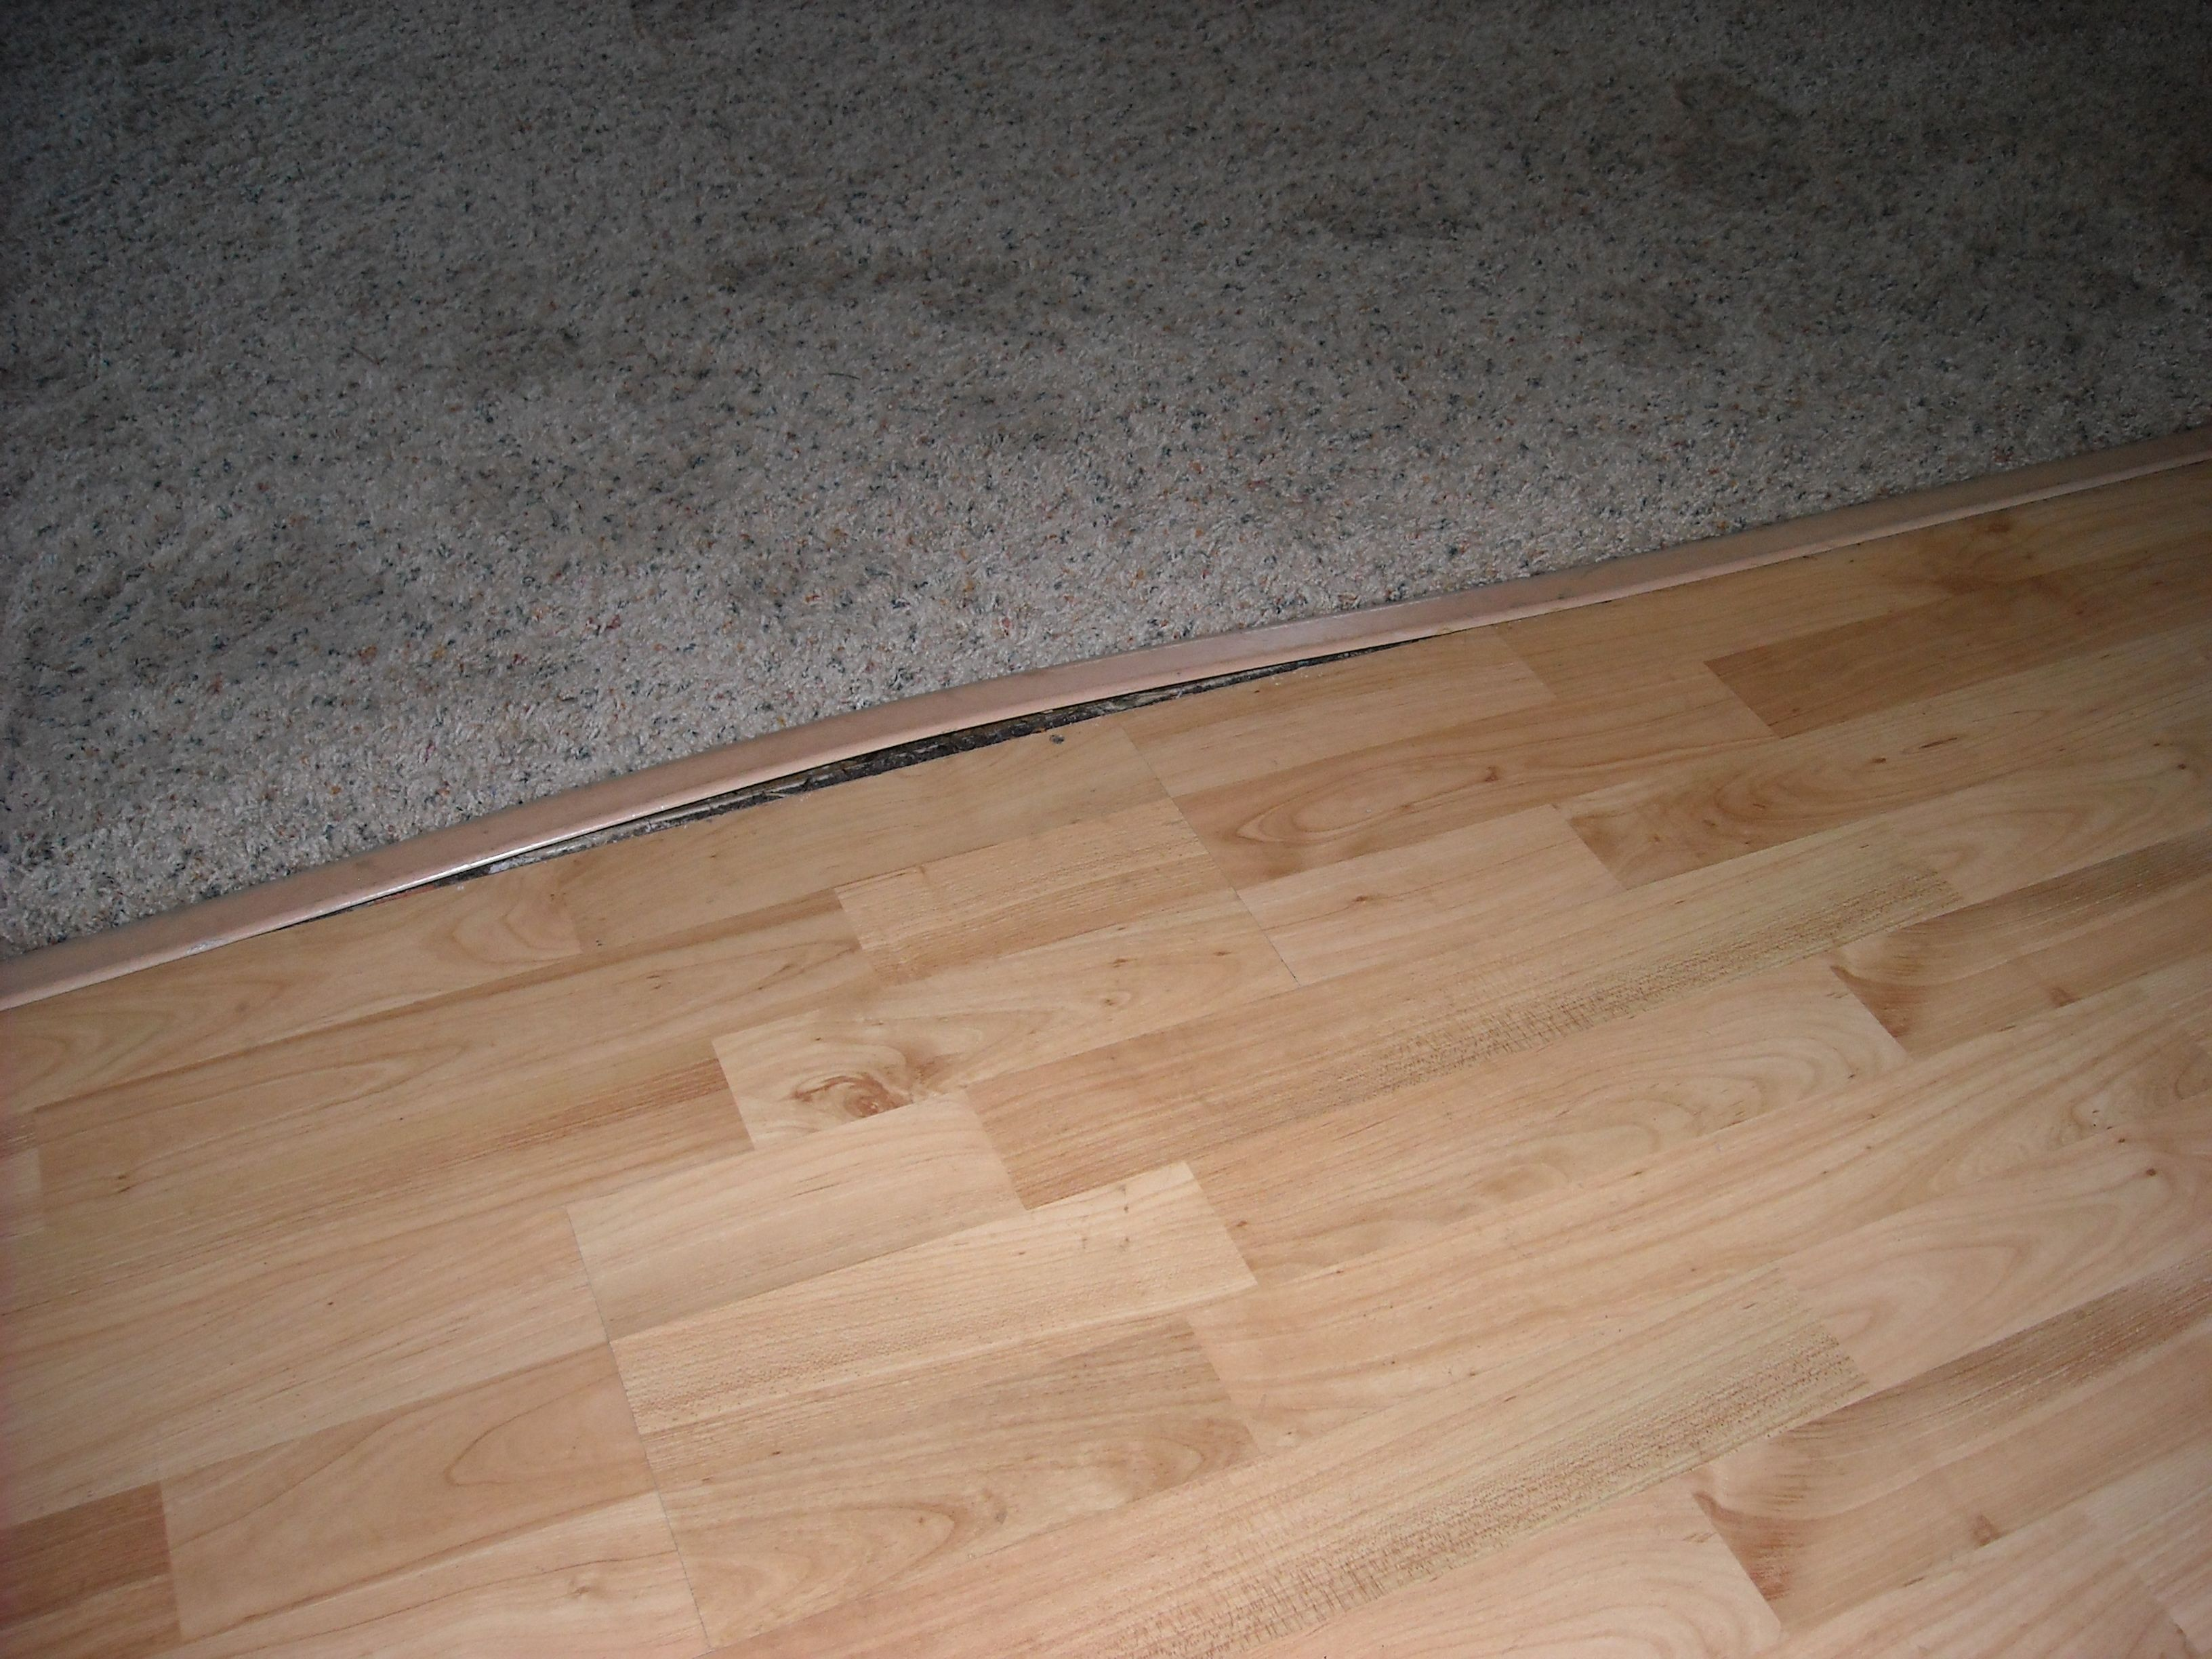 Pergo Outlast Vintage Pewter Oak 10 Mm Thick X 7 12 In Wide Inside Dimensions 1000 Auf Laminate Flooring Water Damage